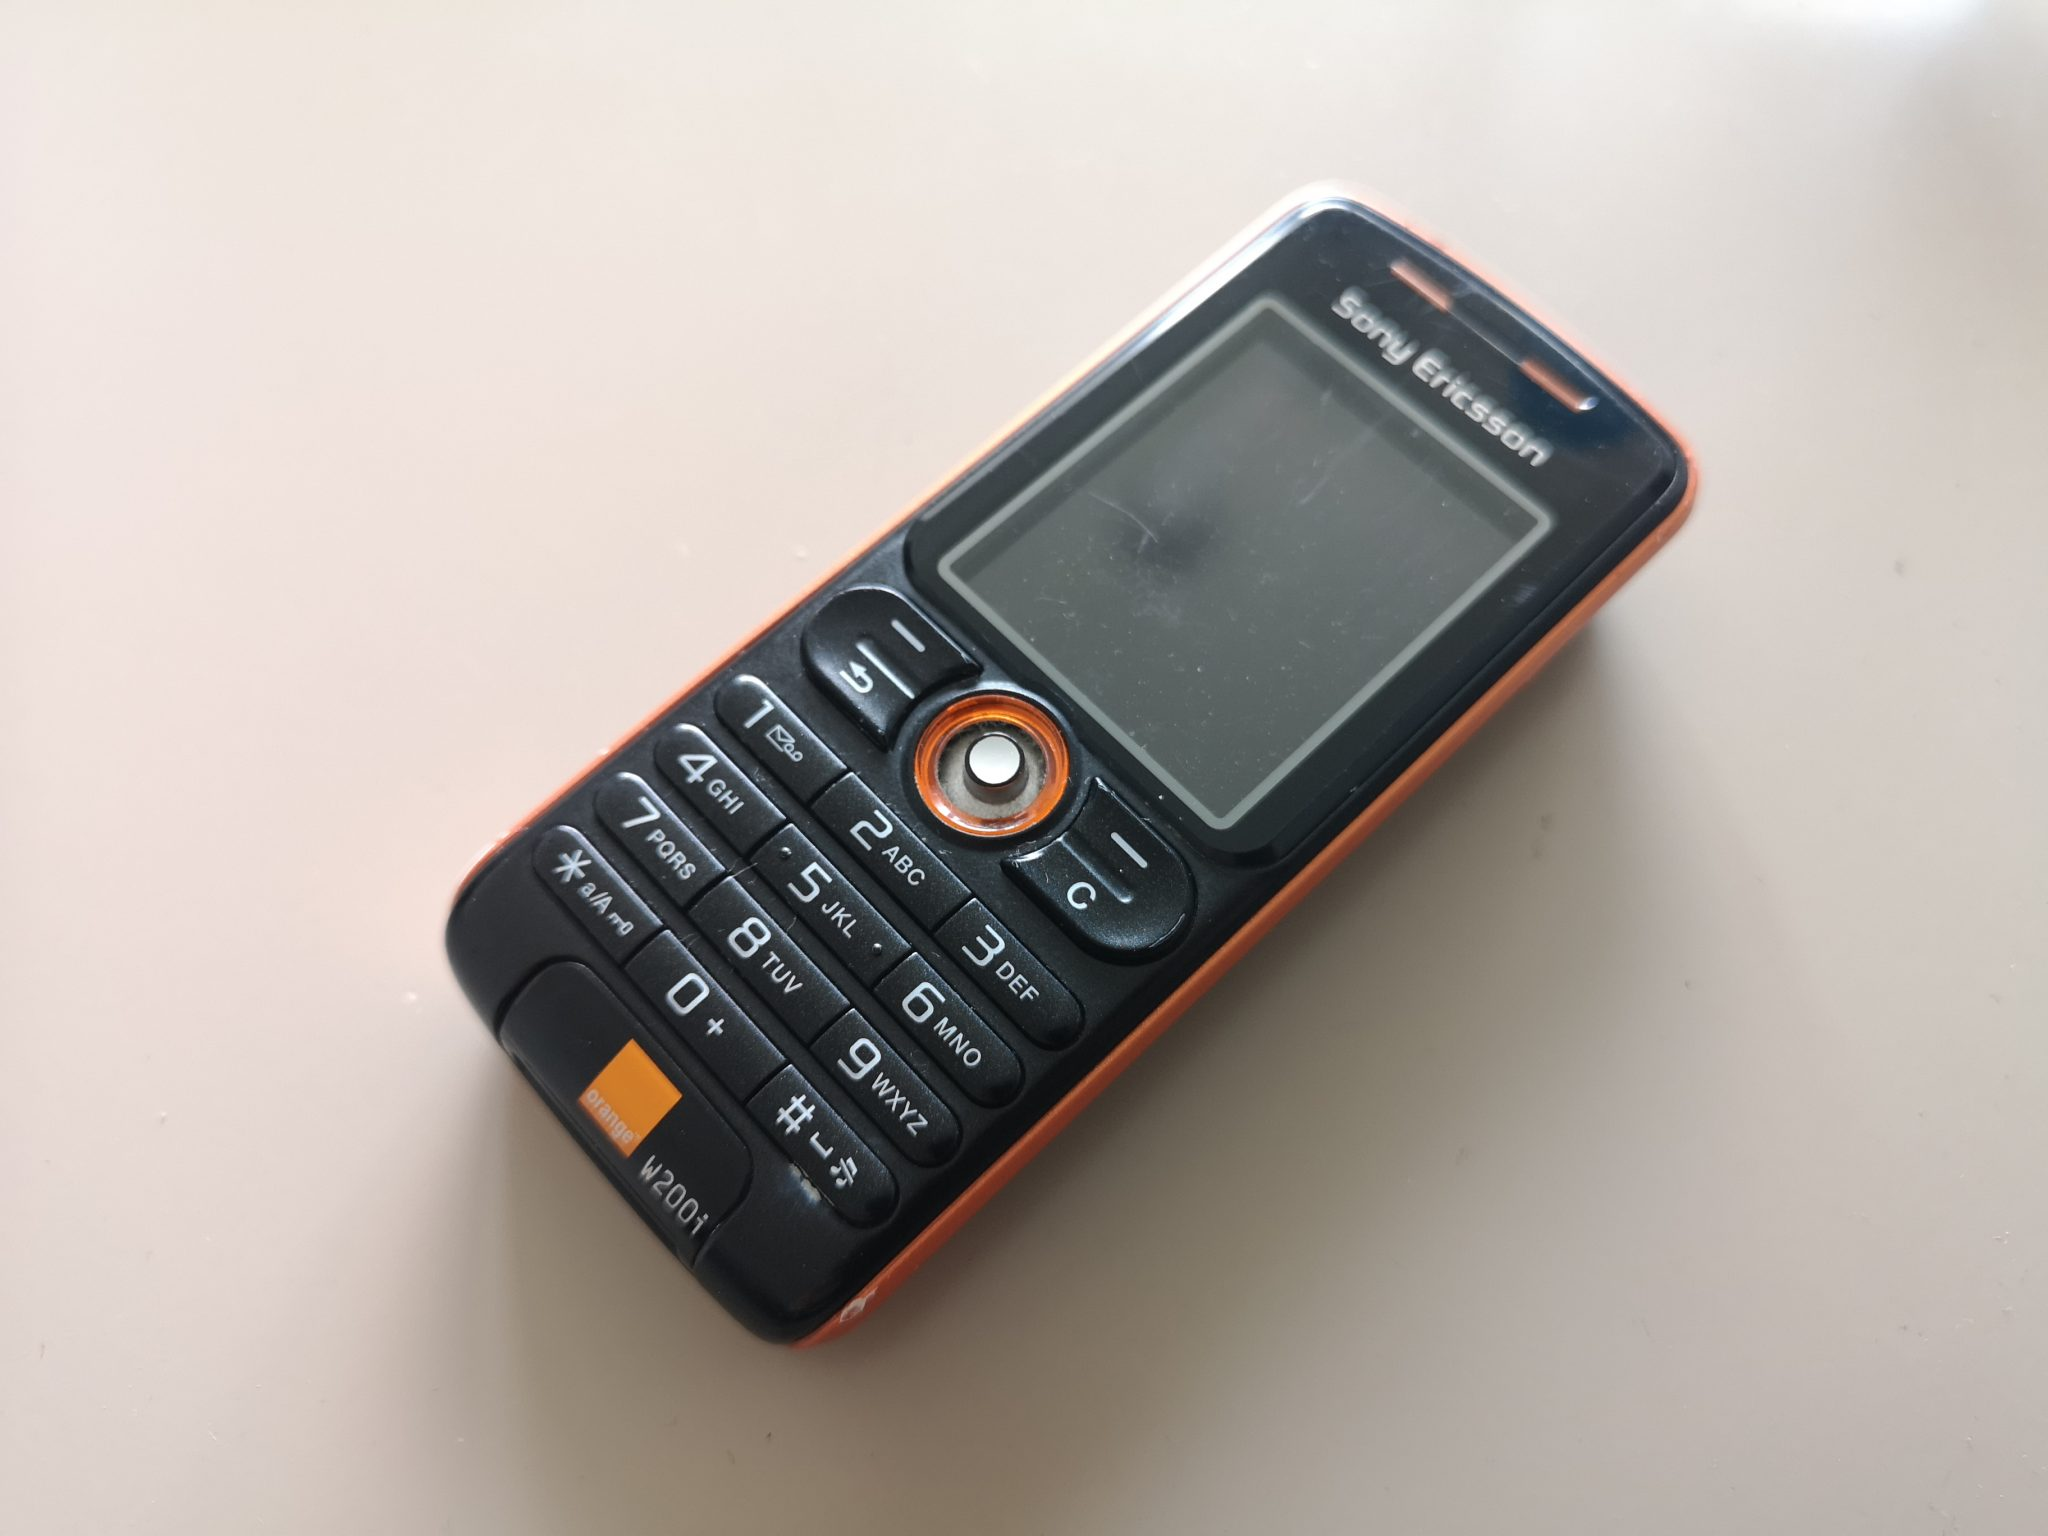 Sony Ericsson W200 Review - Versatile Walkman Branded Vintage Phone